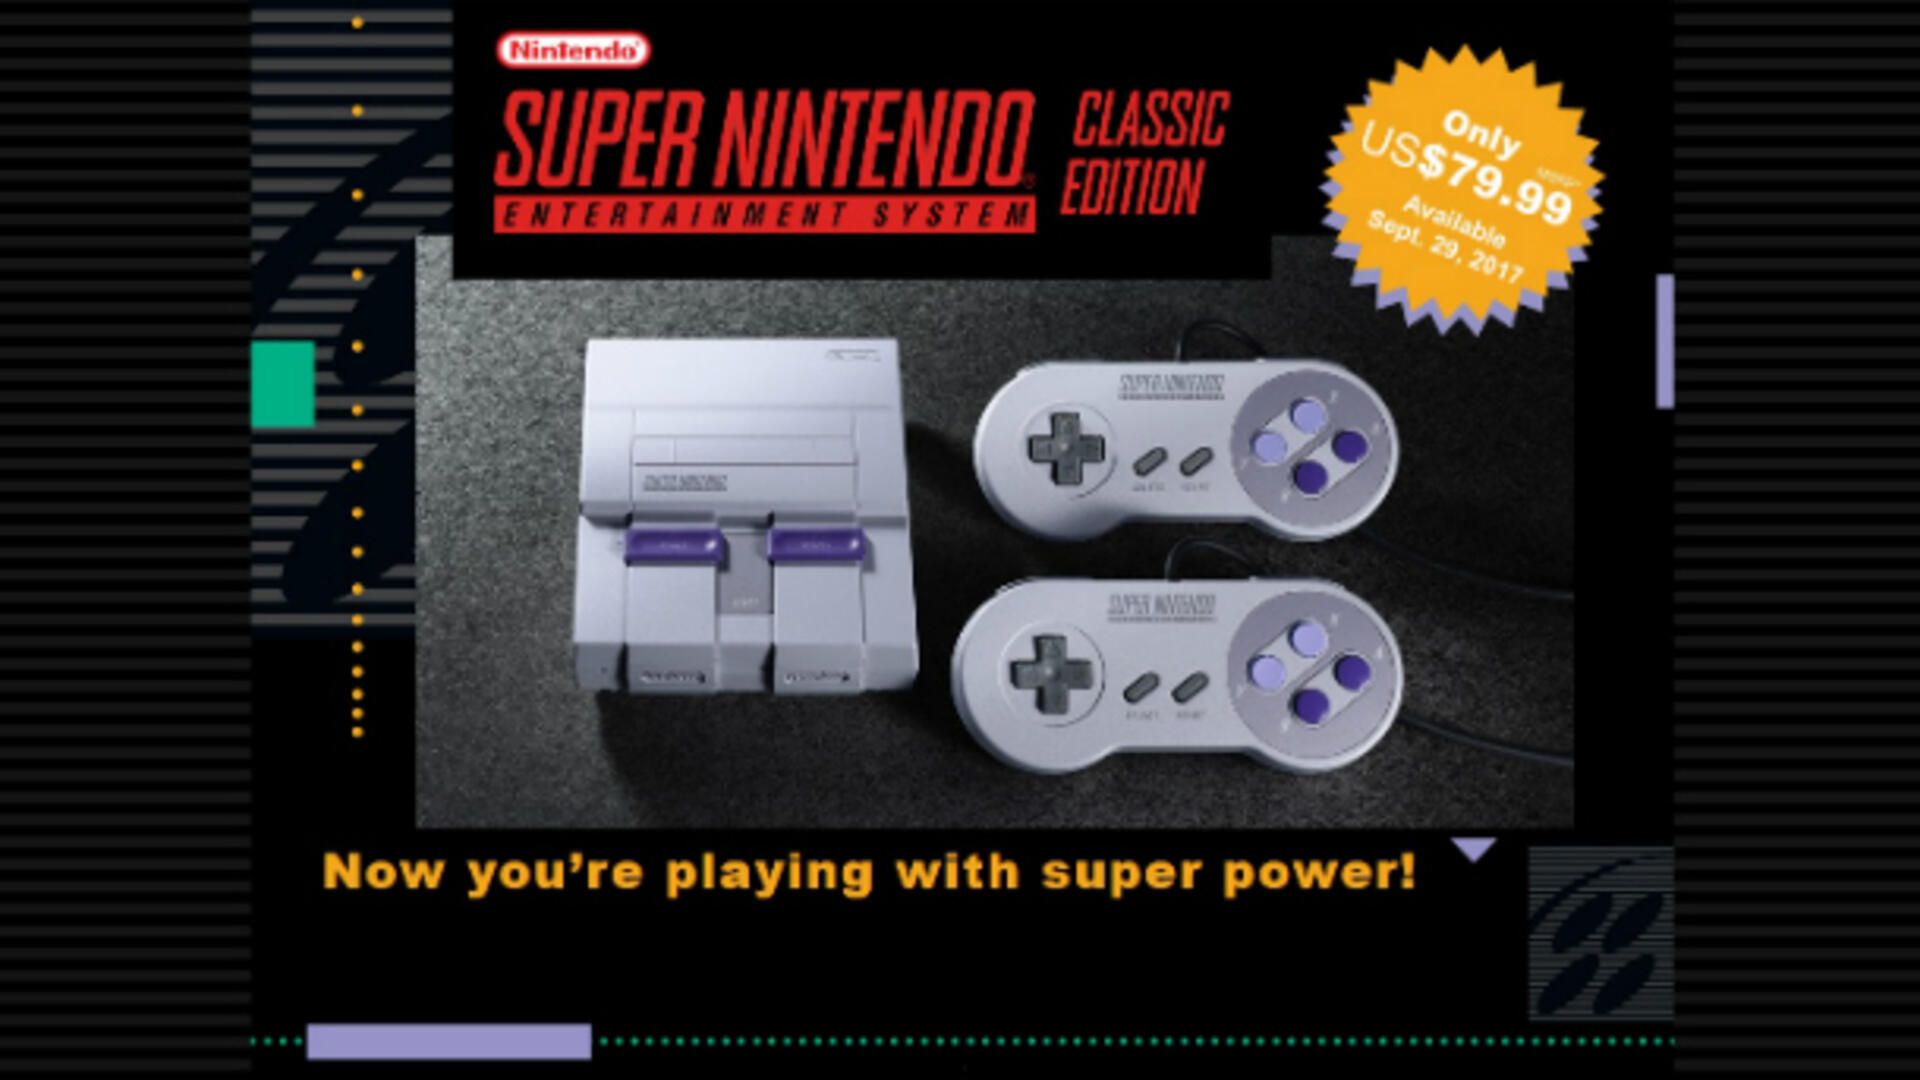 SNES Classic Hardware is Identical to the NES Classic